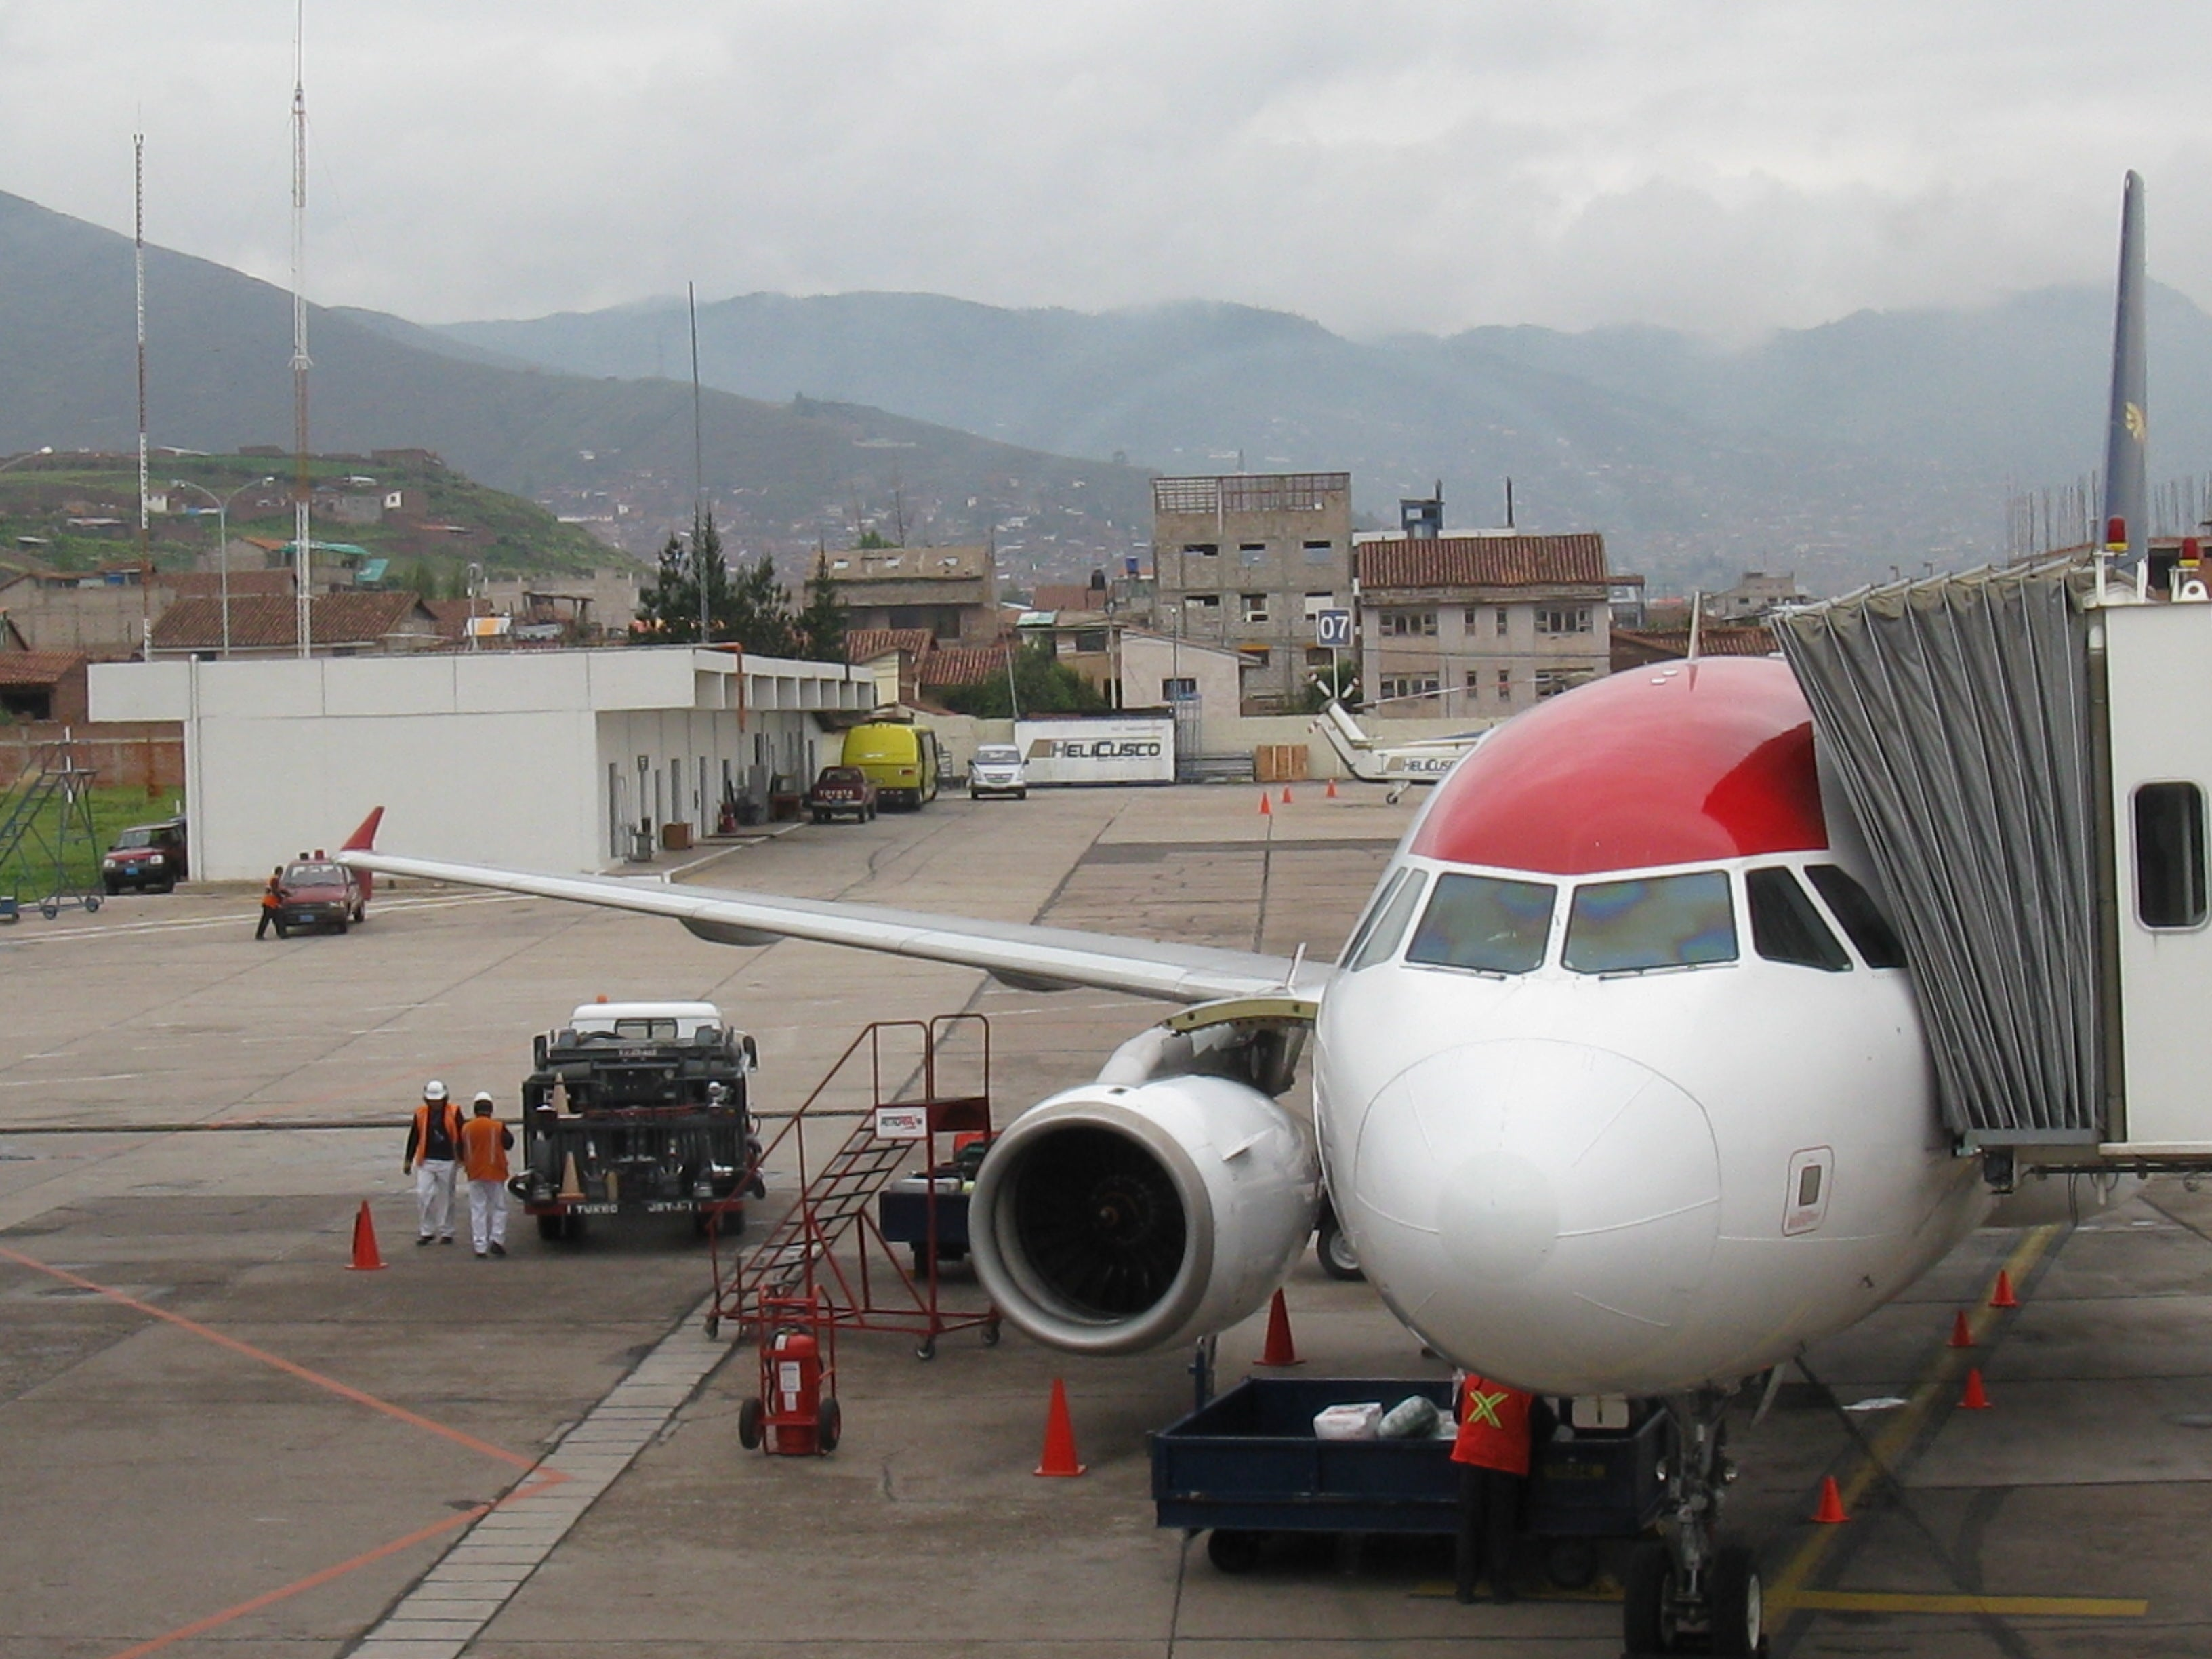 Jorge Chávez International Airport